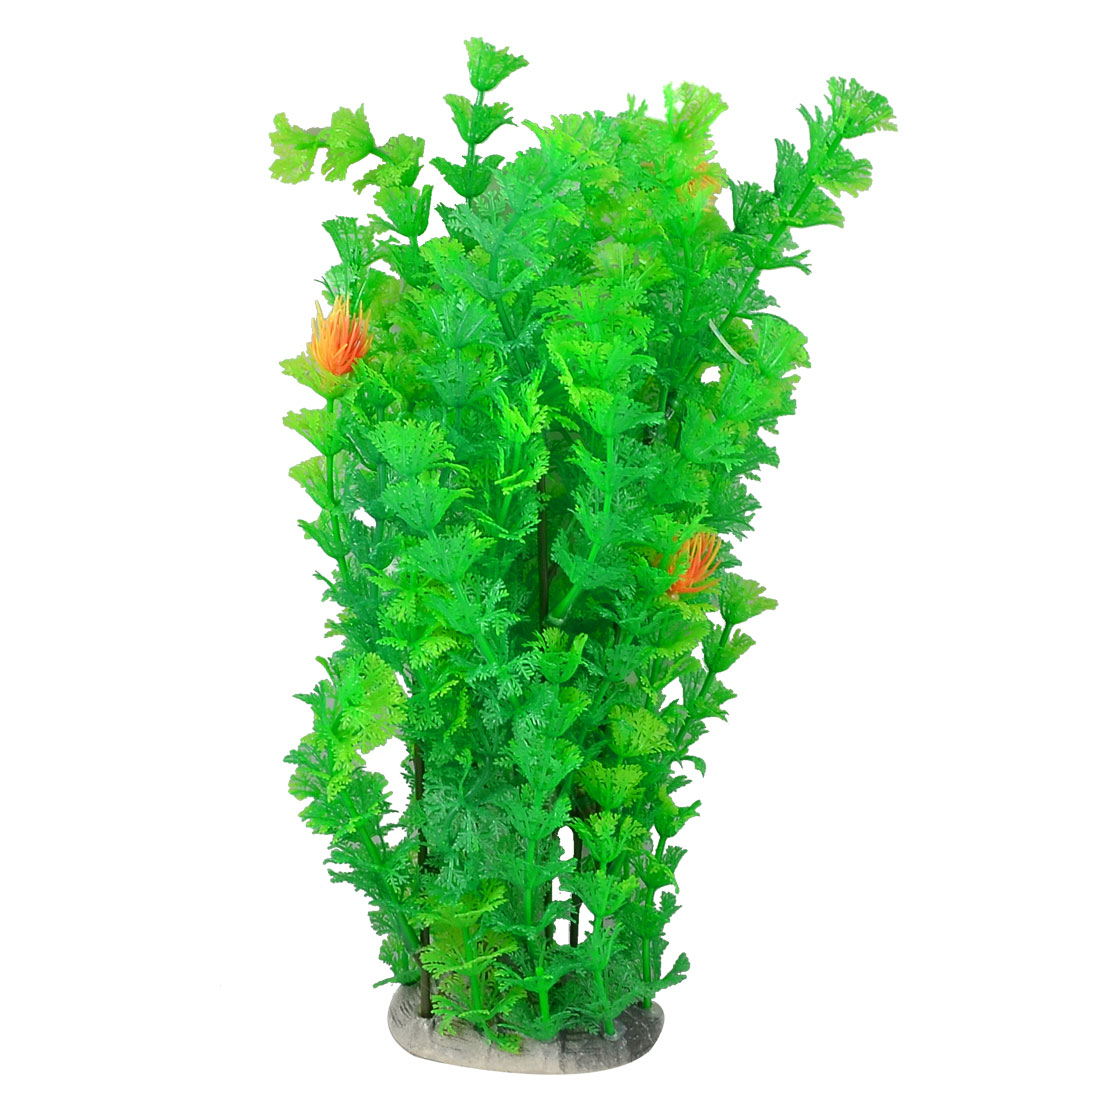 "11.4"" Decorative Plastic Water Plants Grass Green for Aquarium Fish Tank"